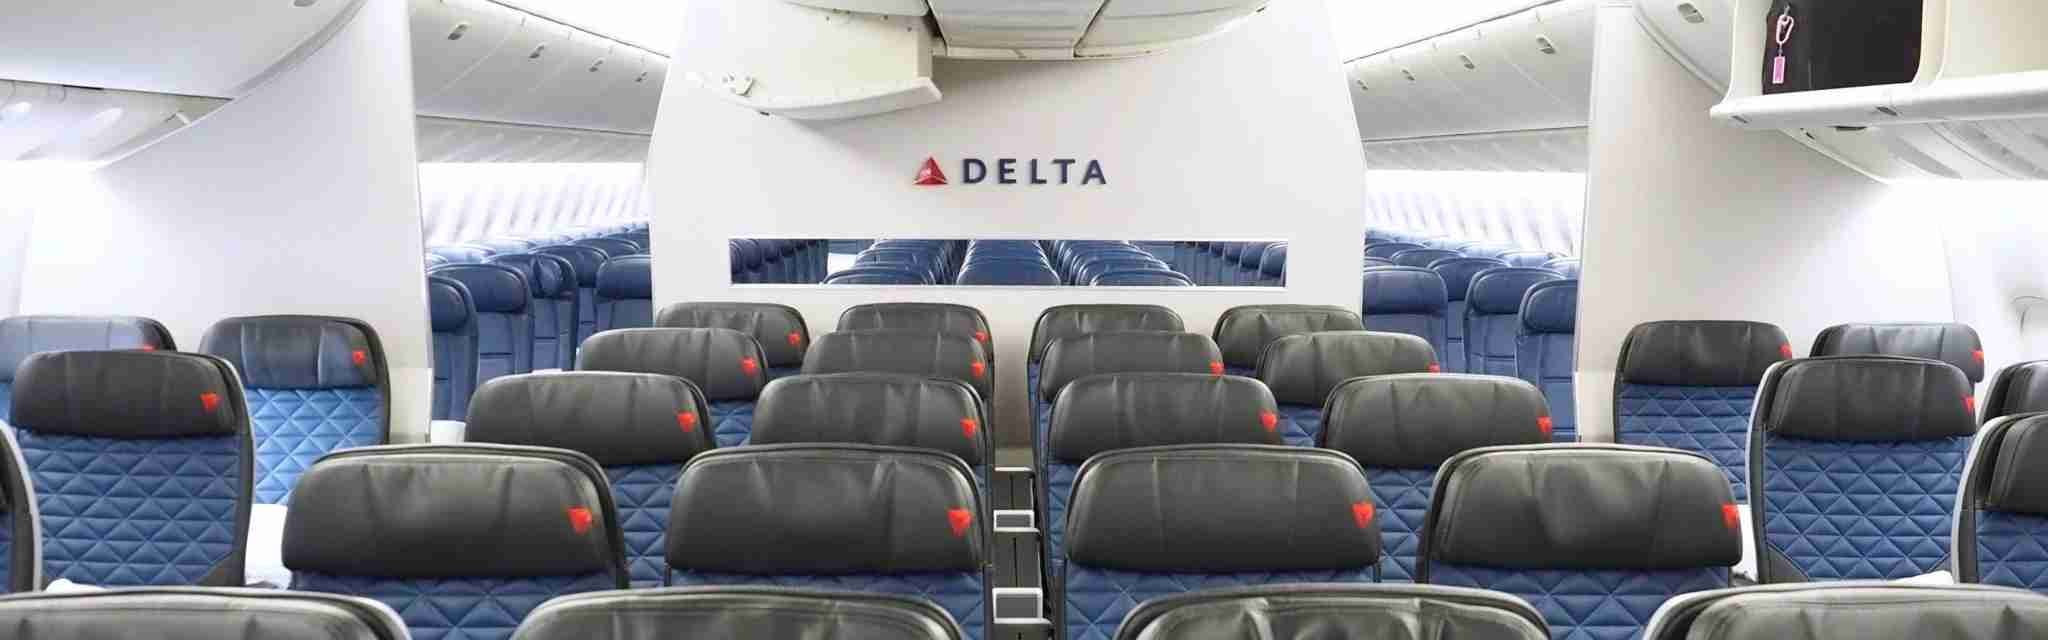 Delta's Premium Select cabin onboard a retrofitted Boeing 777-200ER